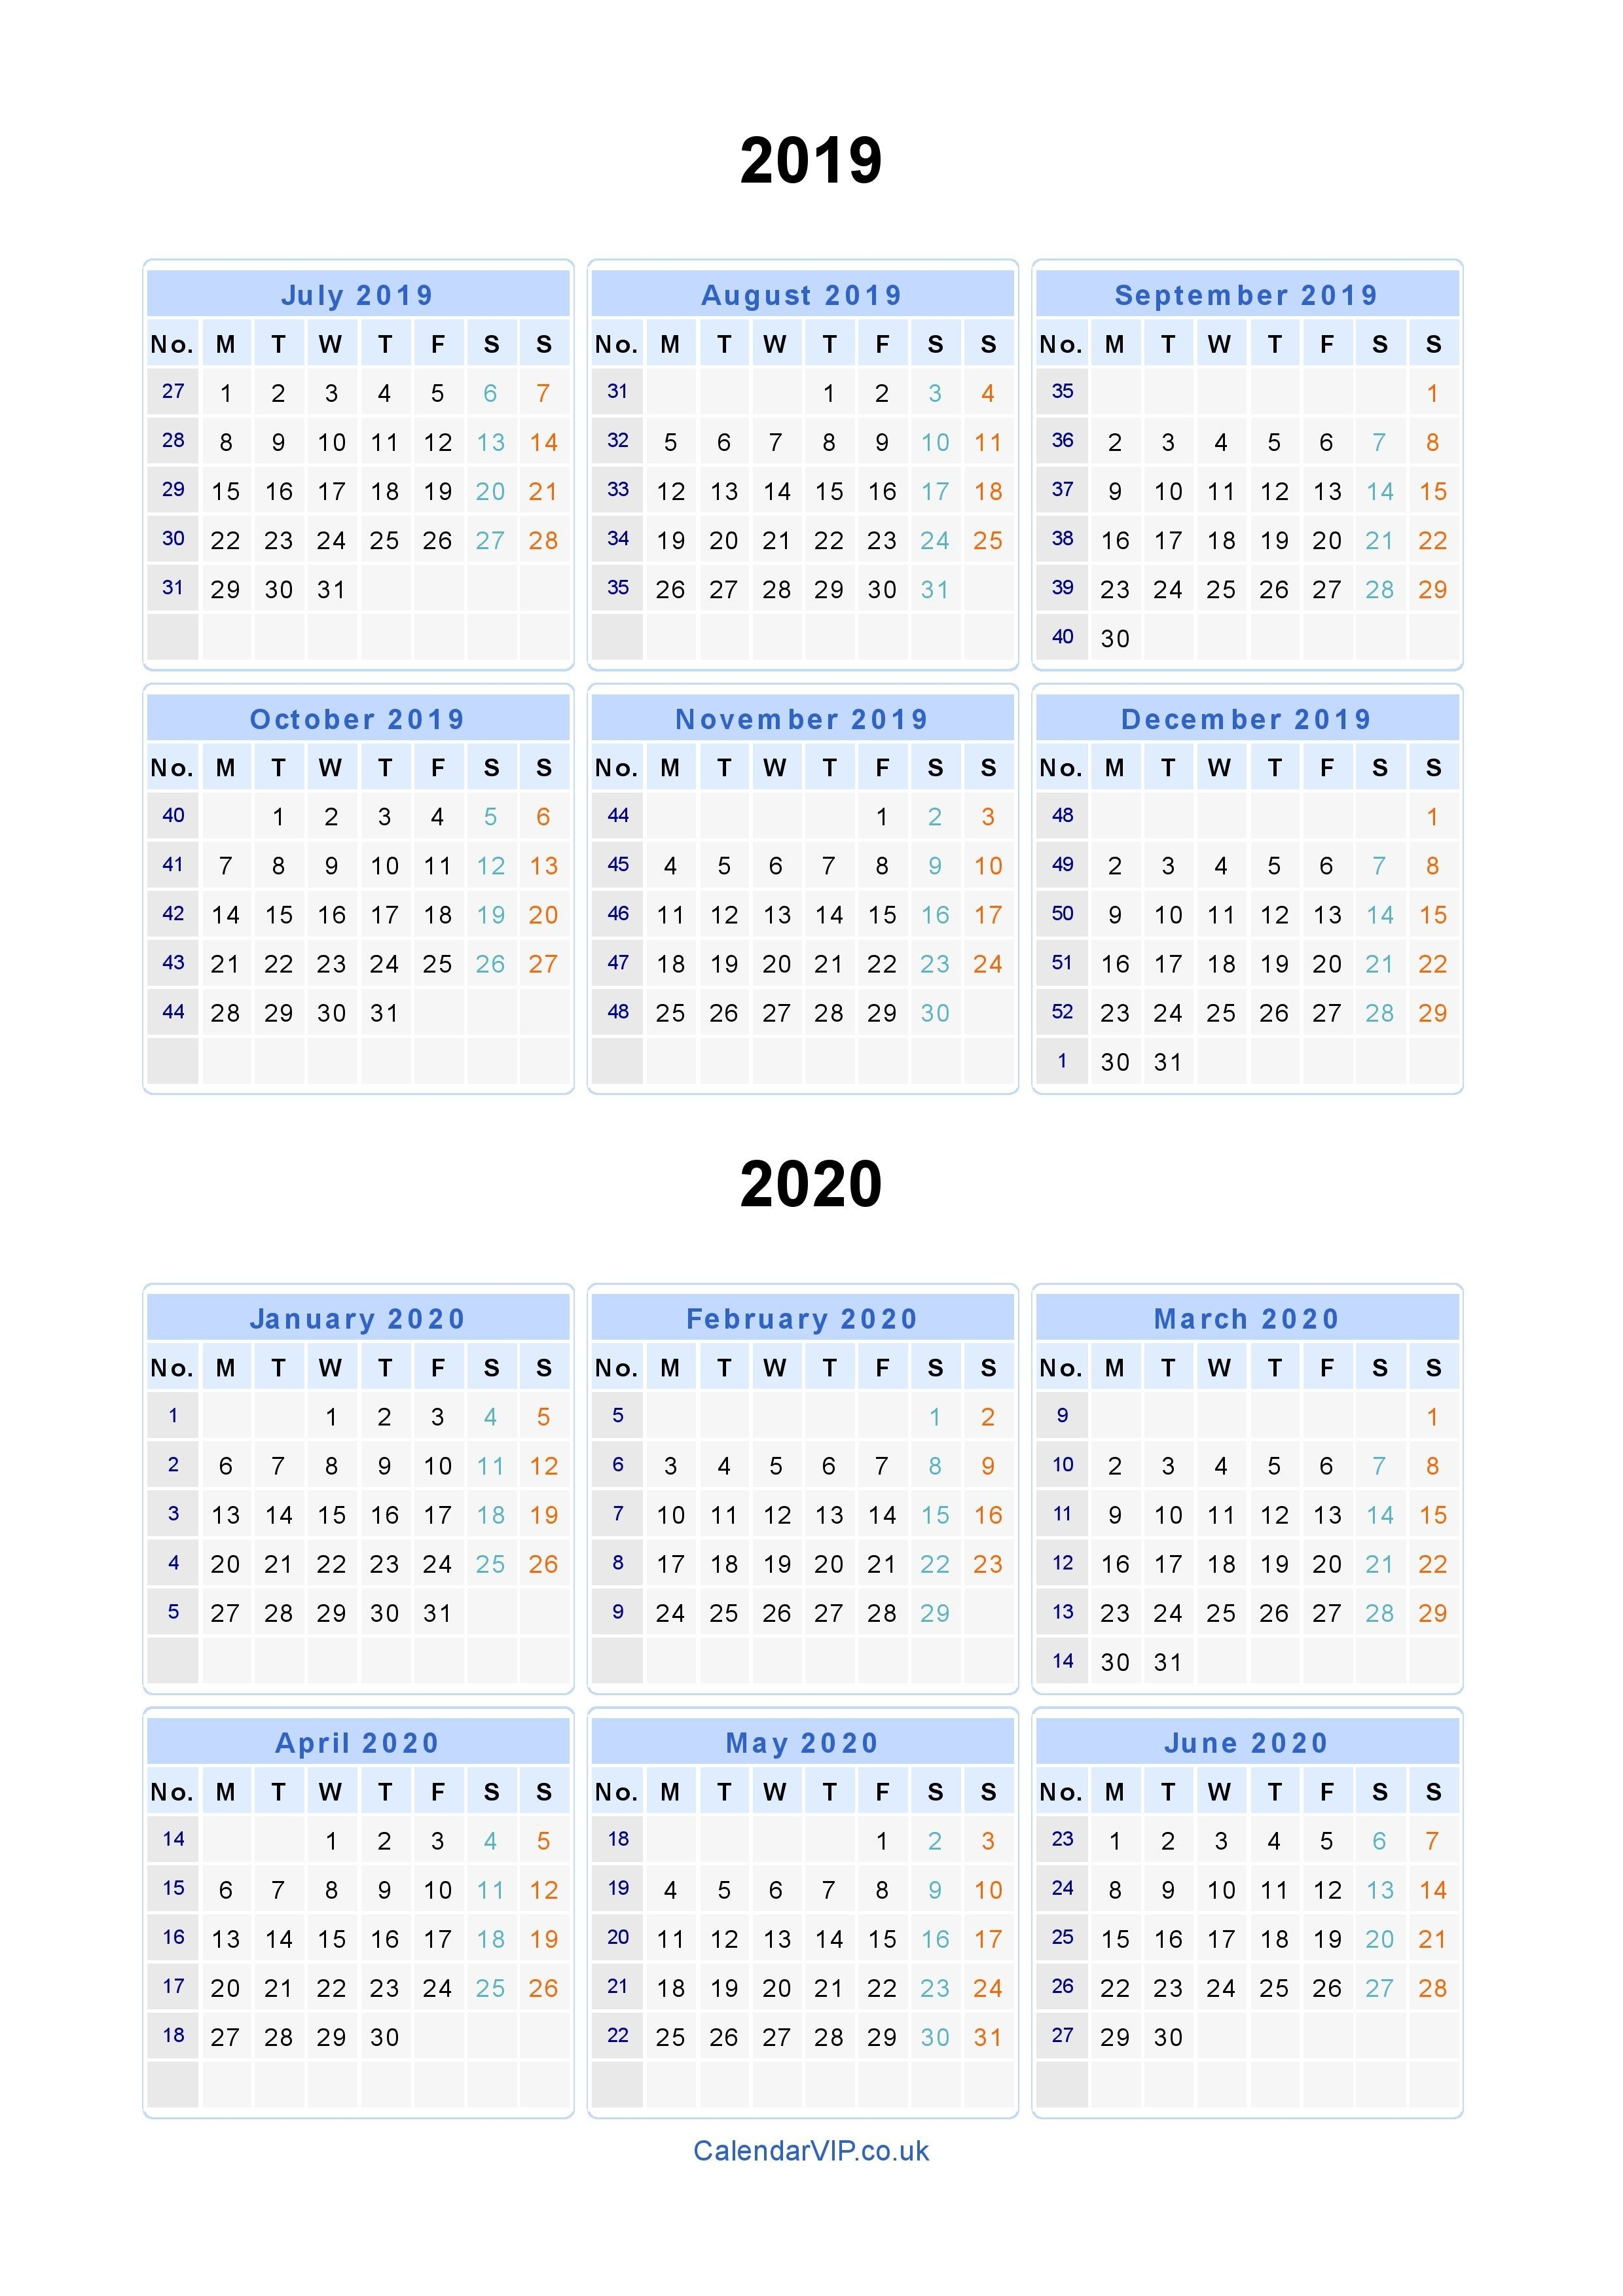 Split Year Calendars 2019 2020 - Calendar From July 2019 To June for Free At A Glance Editable Calendar July 2019-June 2020